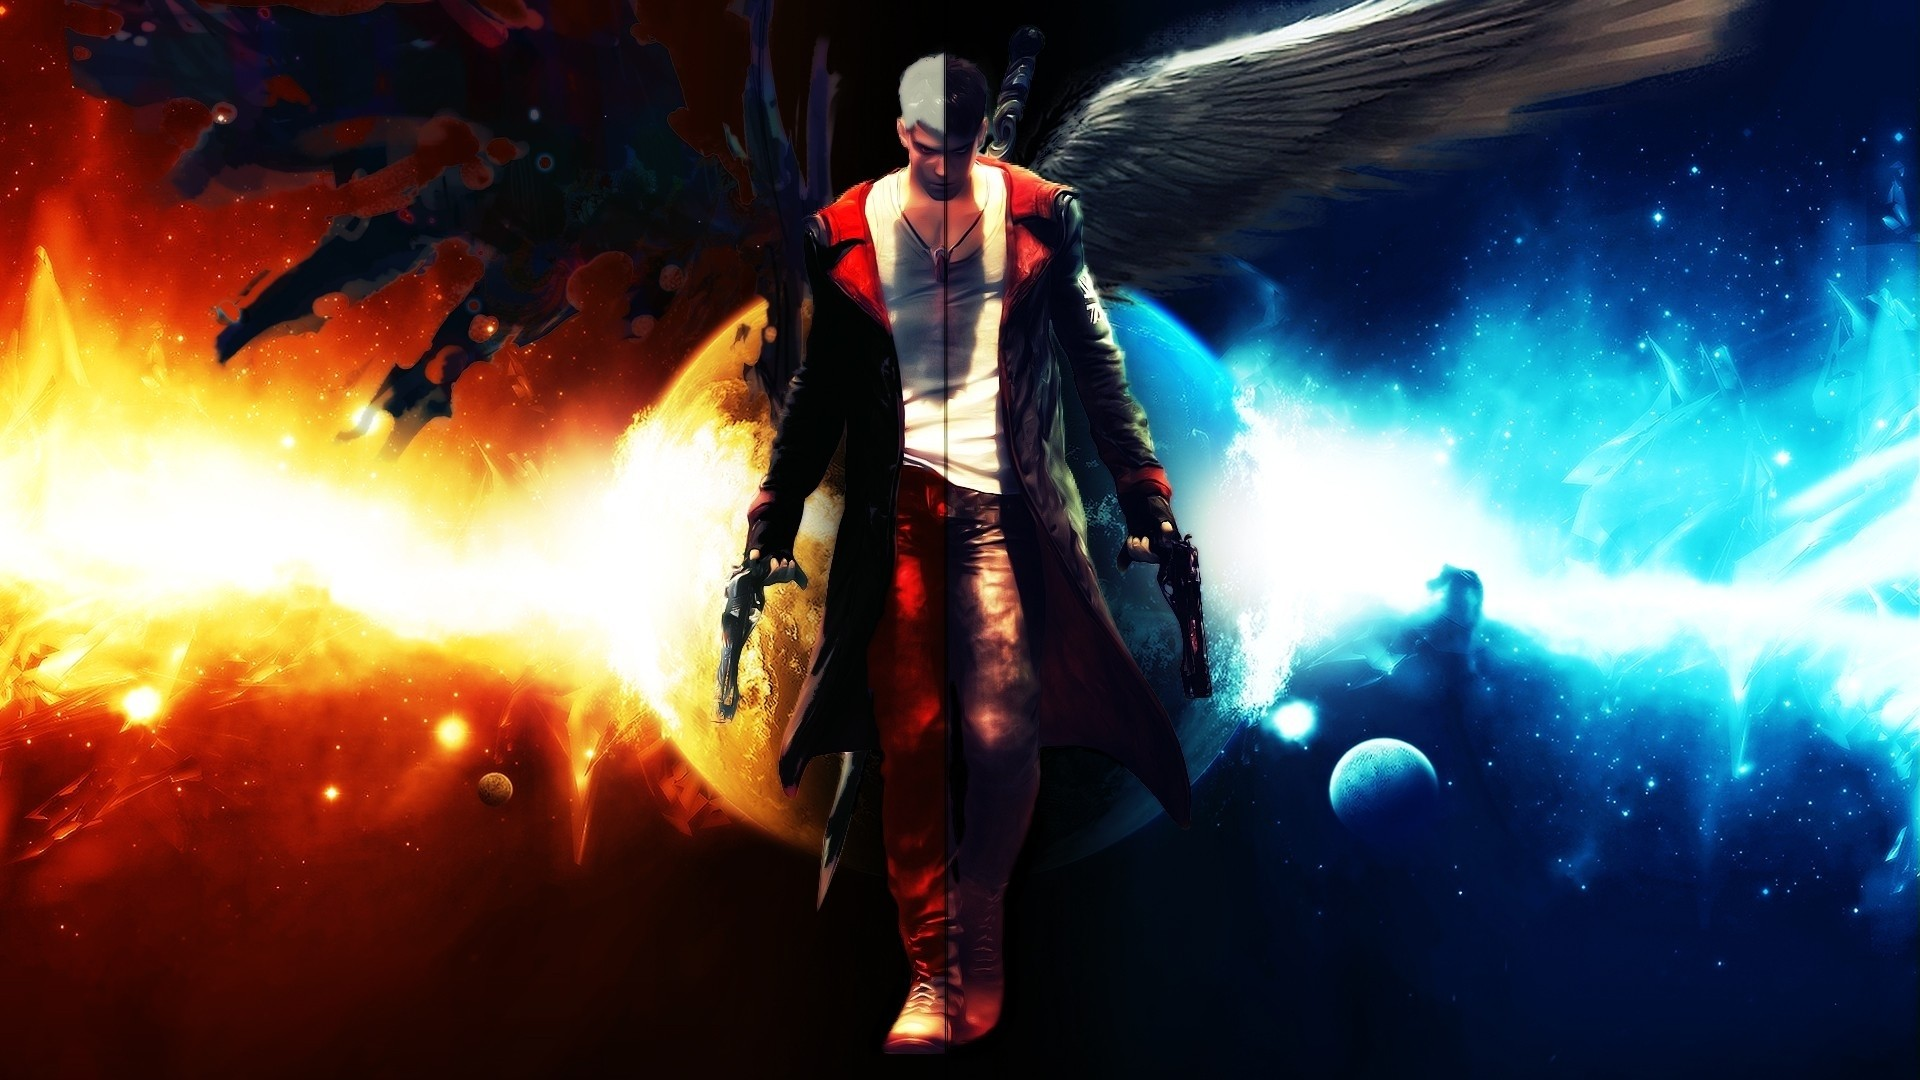 Devil May Cry 5 Hd Wallpaper Posted By Sarah Walker